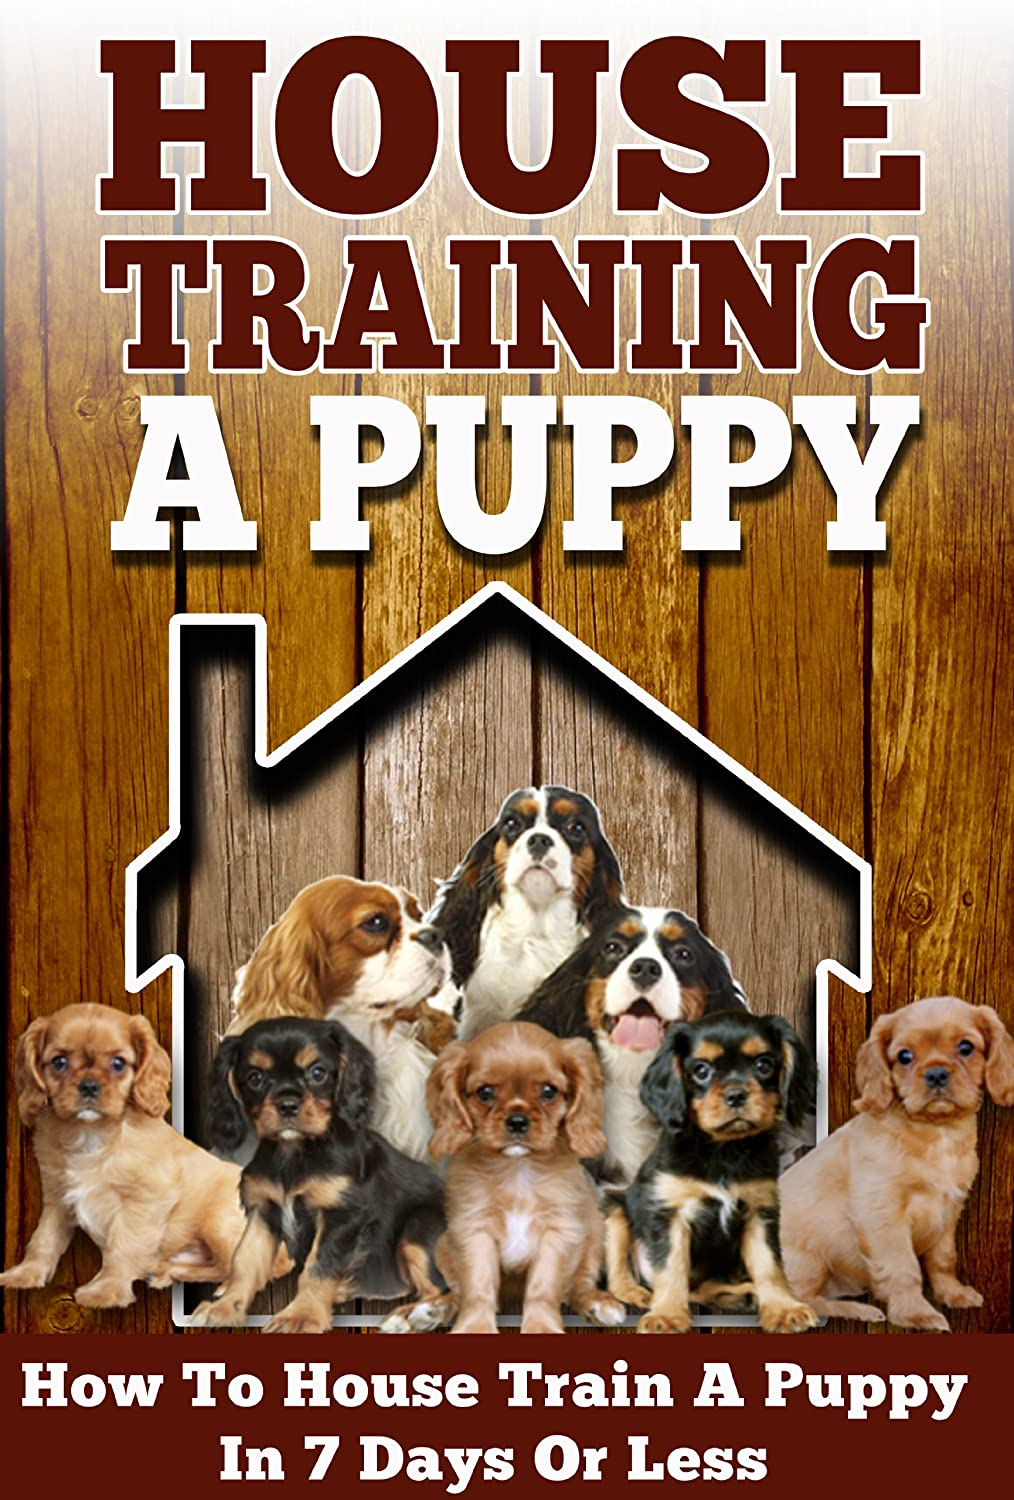 Web-House-Training-A-Puppy-How-To-House-Train-Your-Puppy-In-7-Days-Or-Less